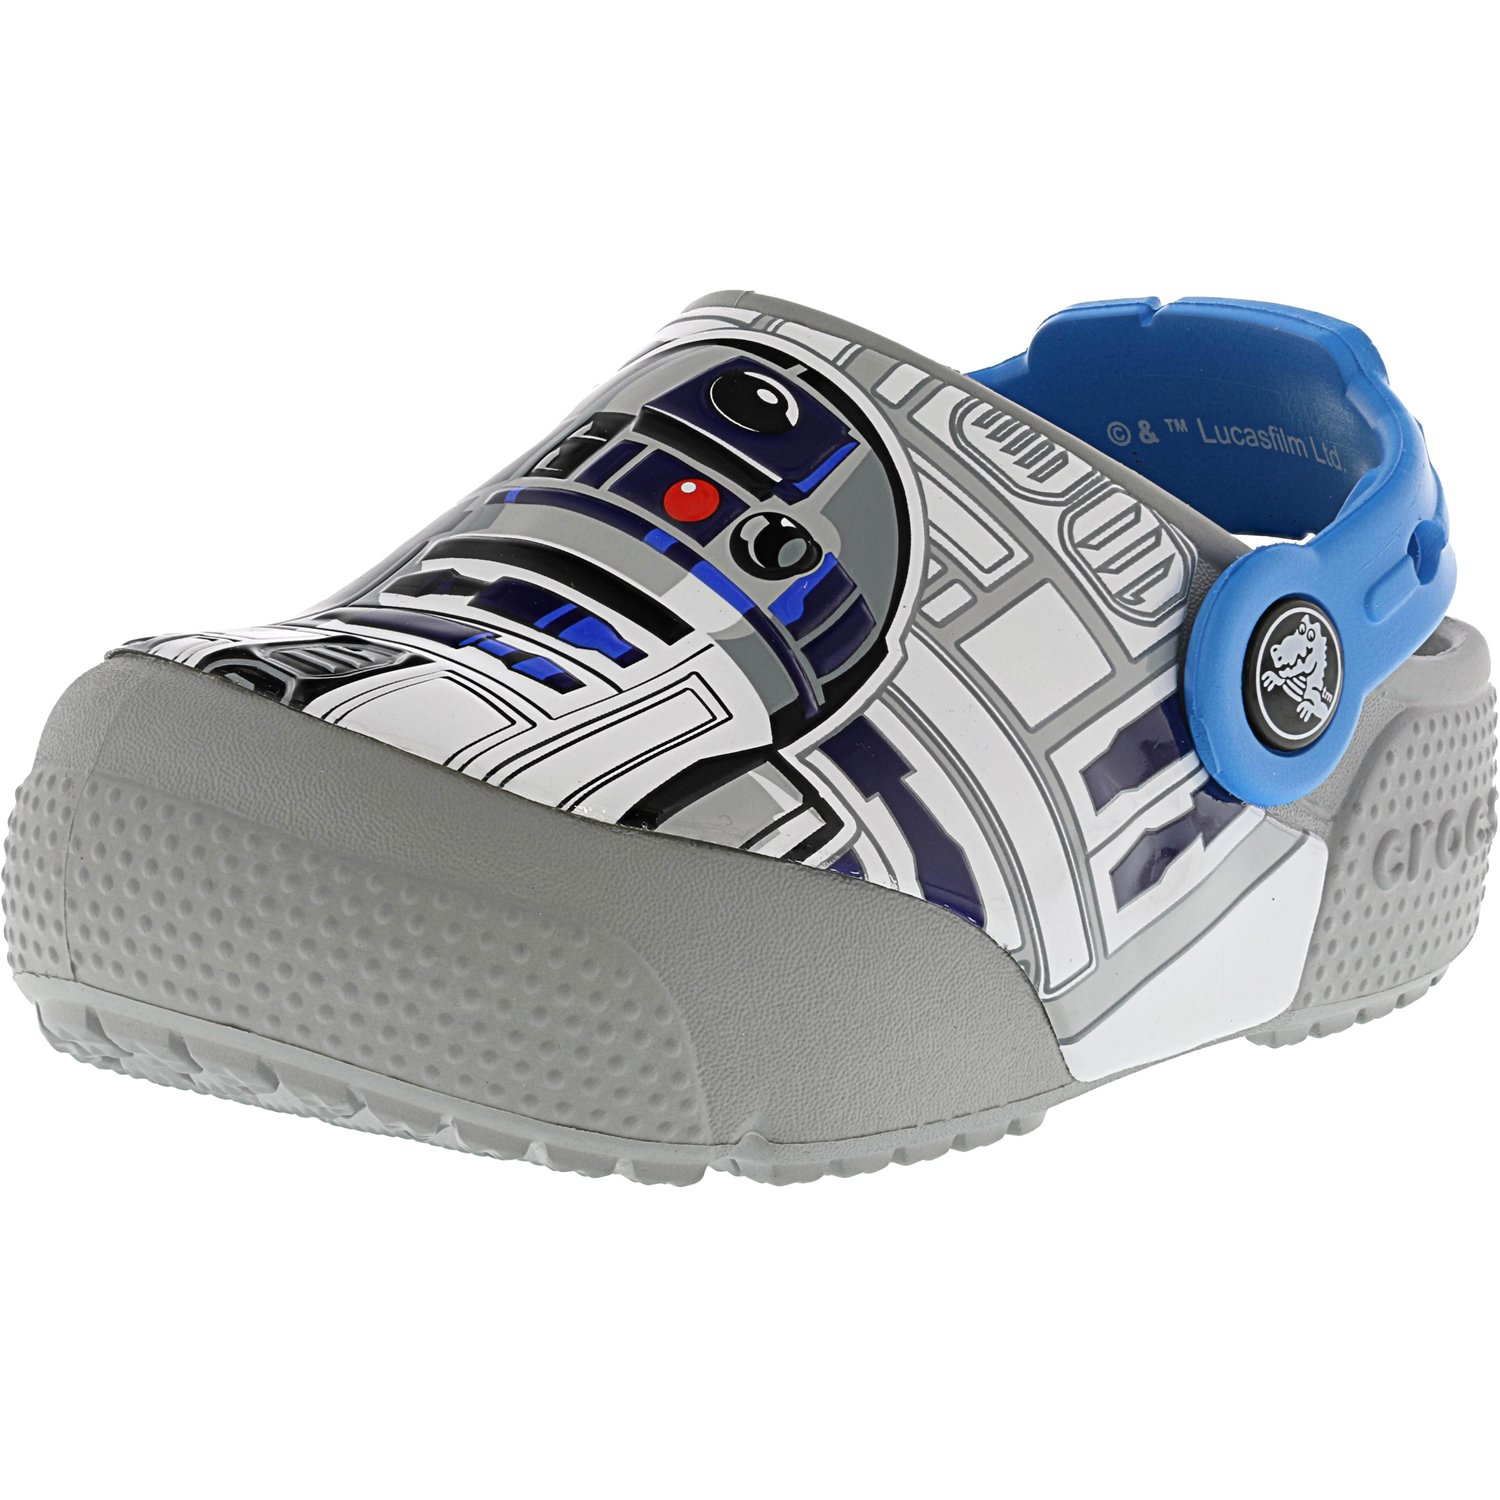 Crocs Crocsfunlab Lights R2D2 Ocean   Light Grey Rubber Clogs 5M by Crocs